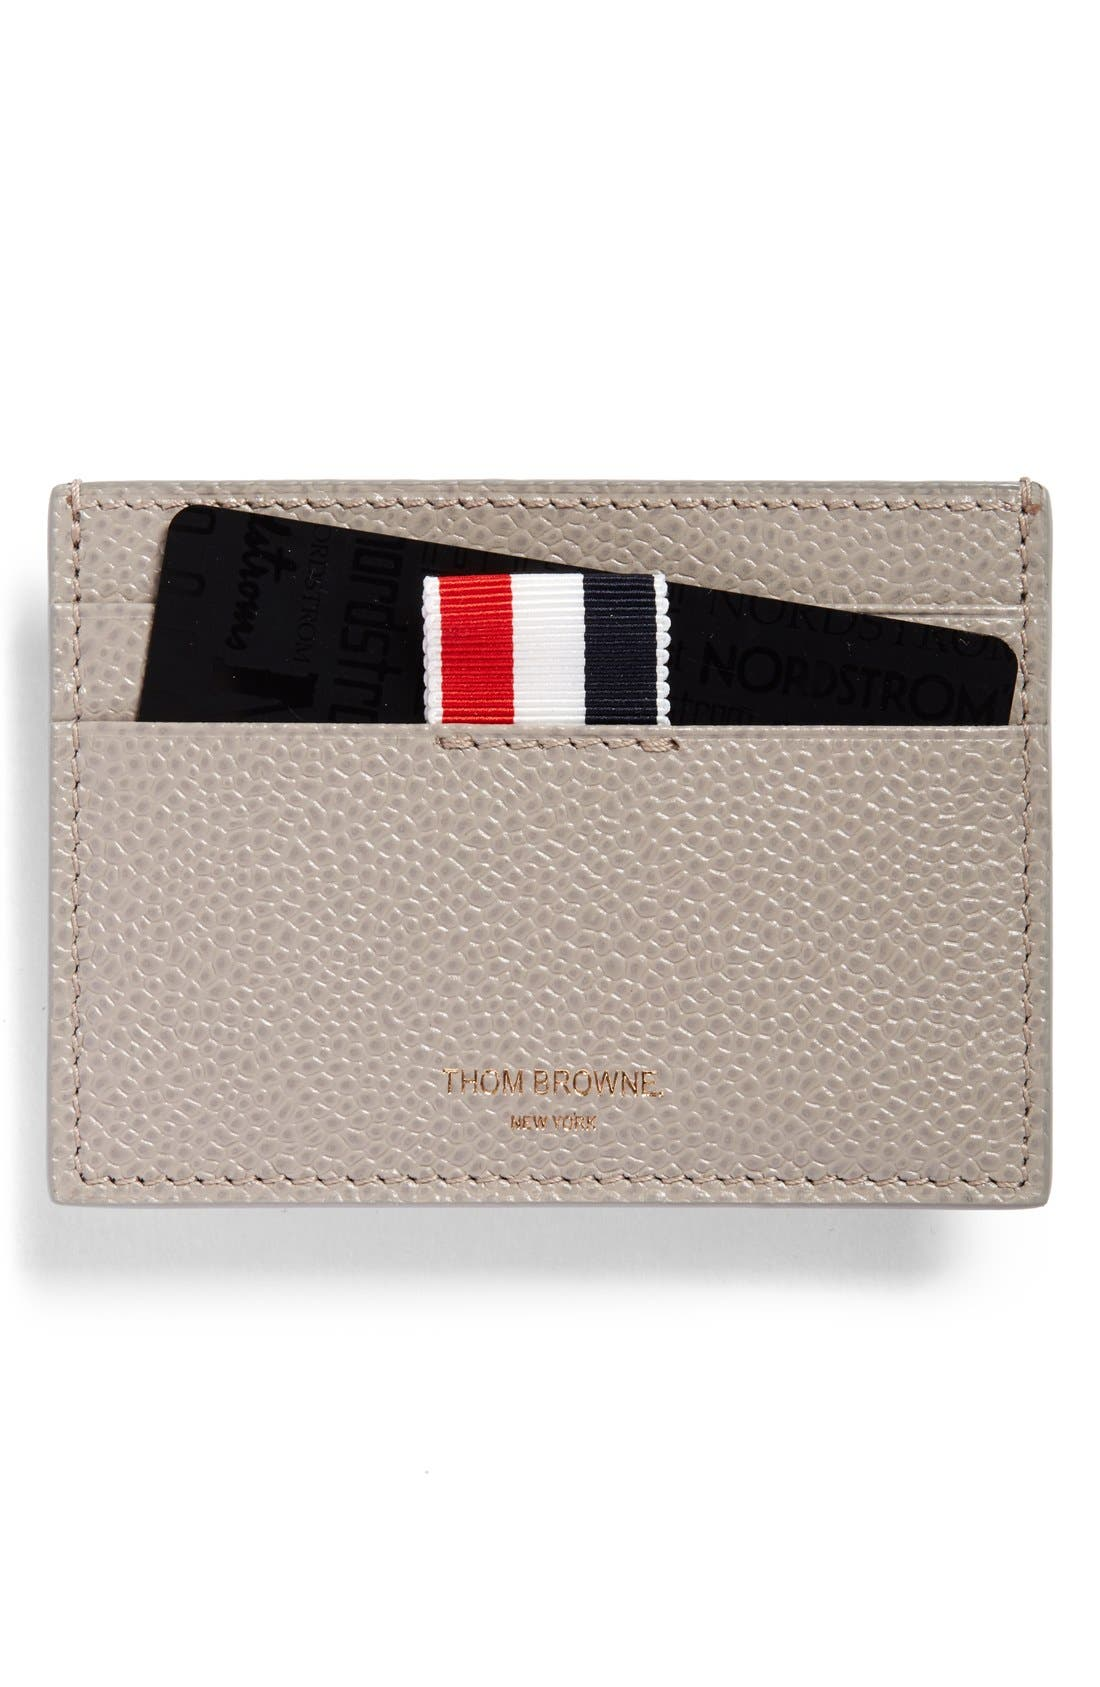 THOM BROWNE Pebbled Leather Card Case